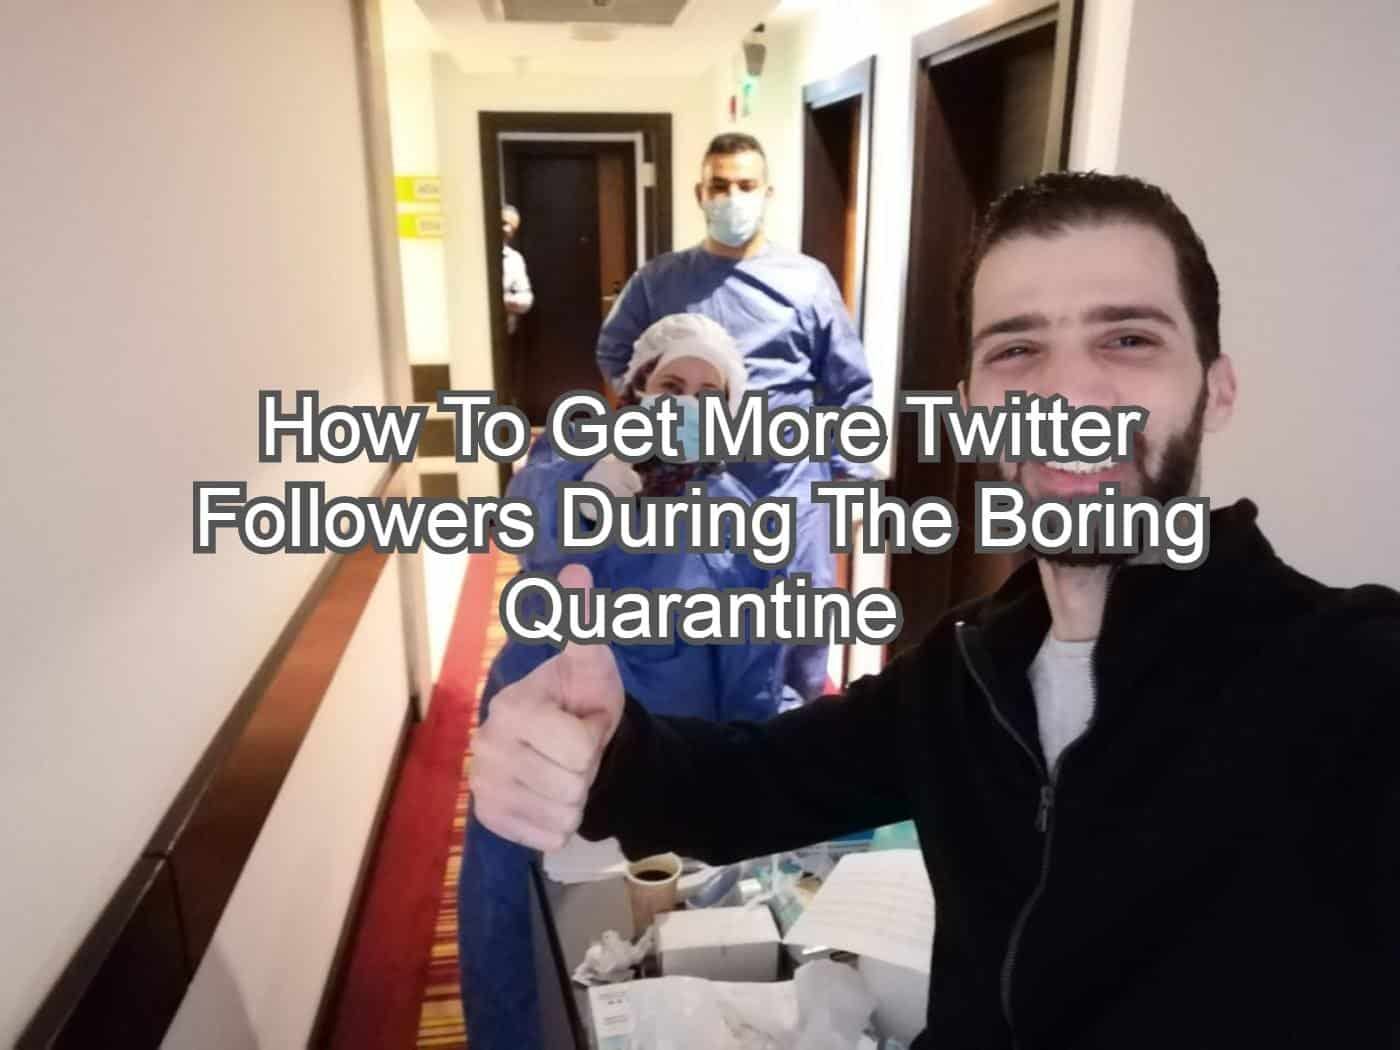 How To Get More Twitter Followers During The Boring Quarantine